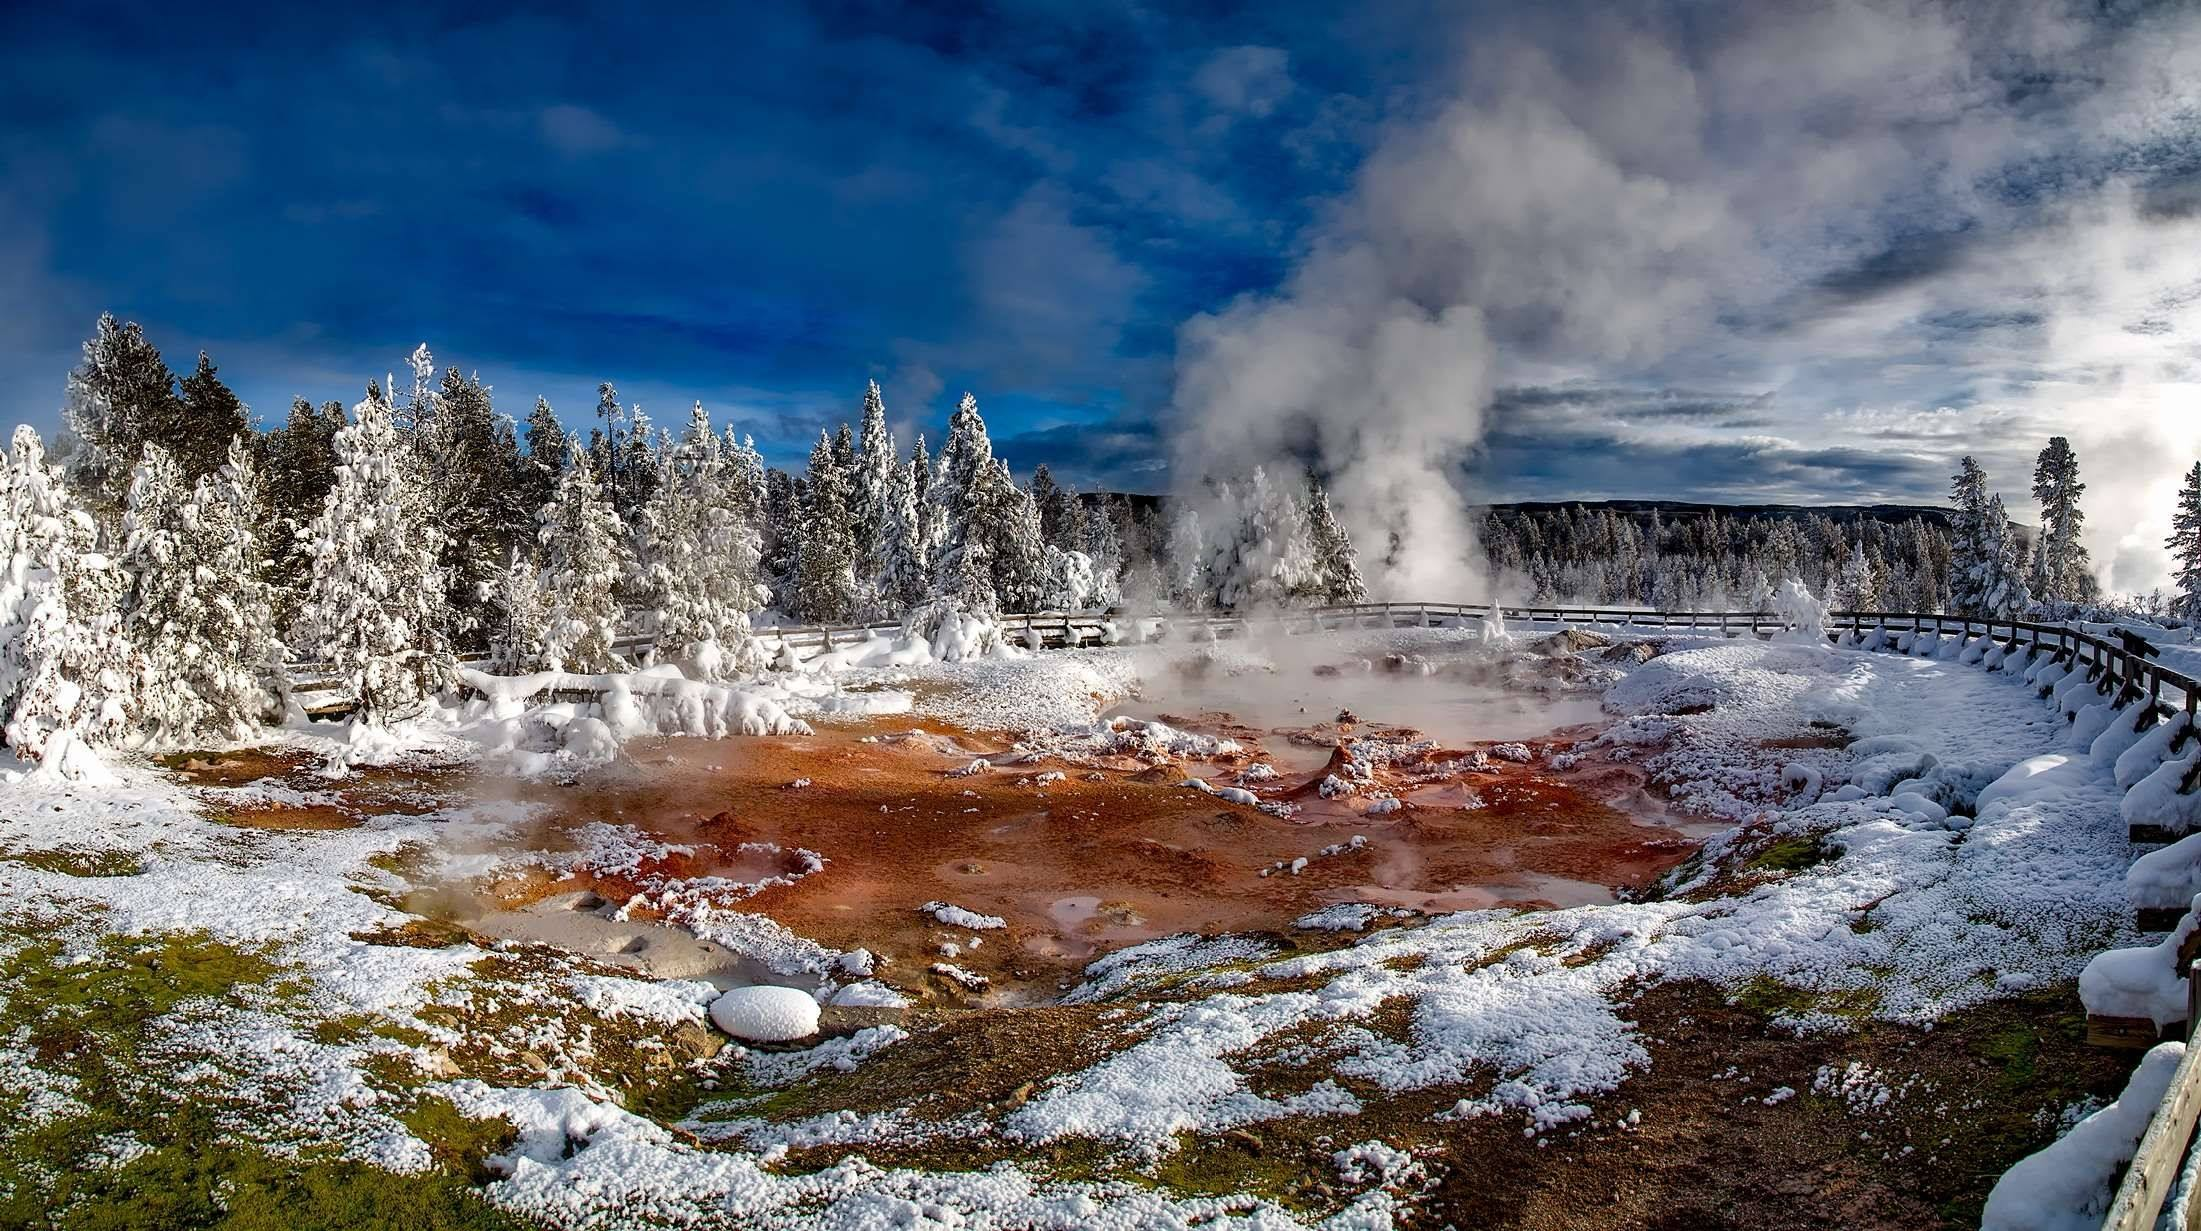 yellowstone national park geyser hot spring steam